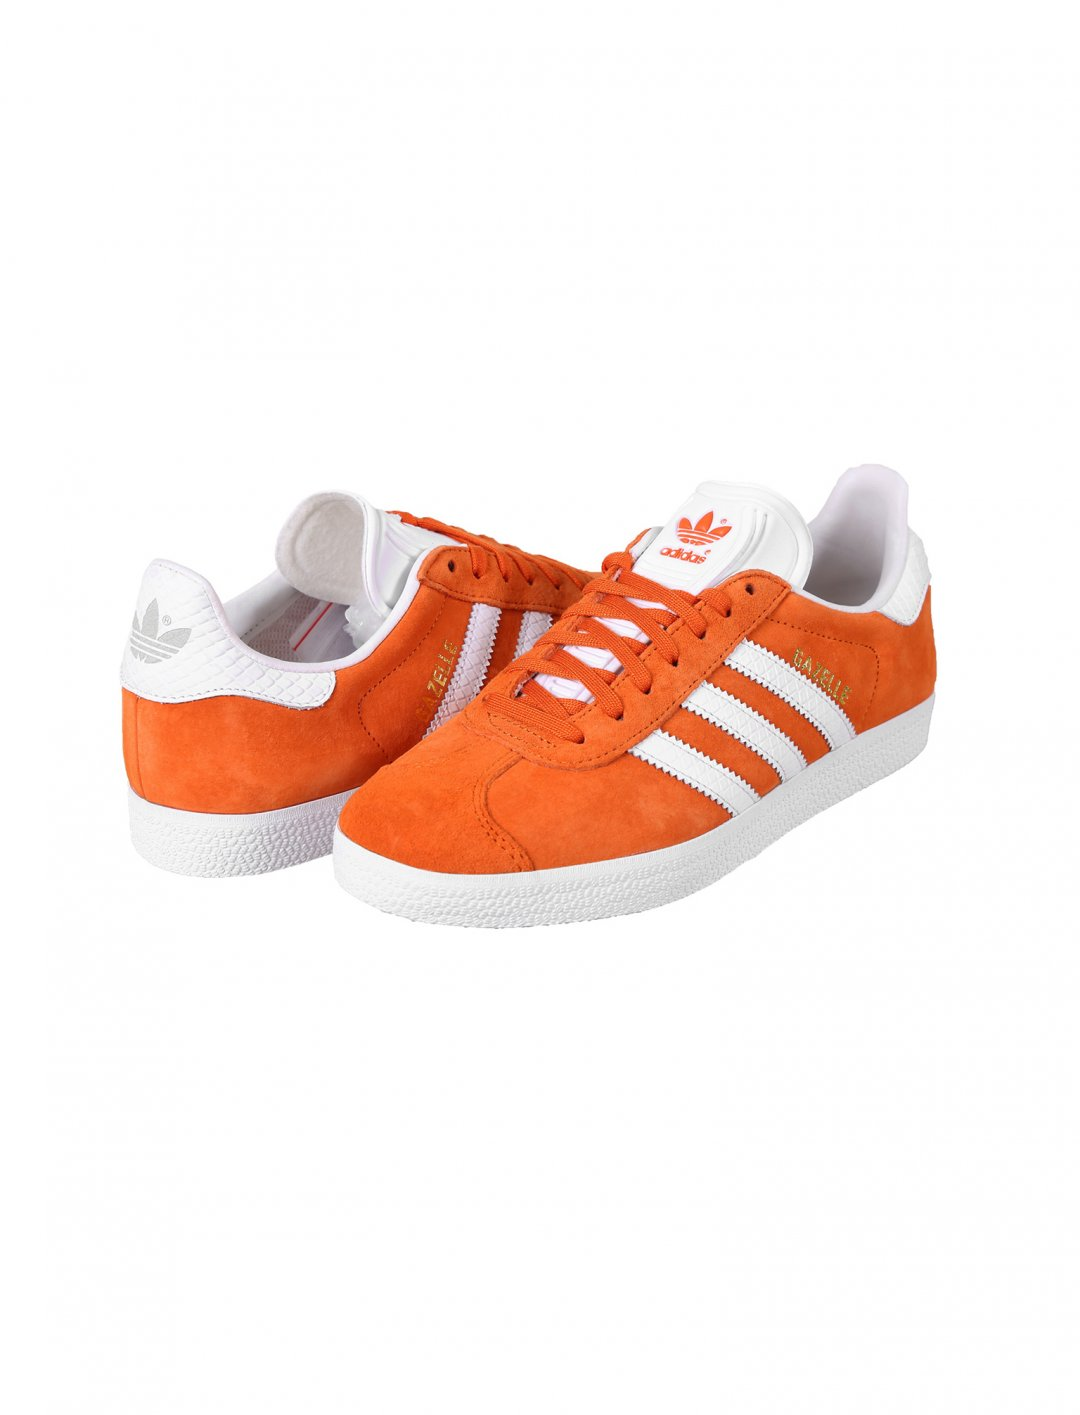 "Adidas Gazelle Trainers {""id"":12,""product_section_id"":1,""name"":""Shoes"",""order"":12} Adidas Originals"